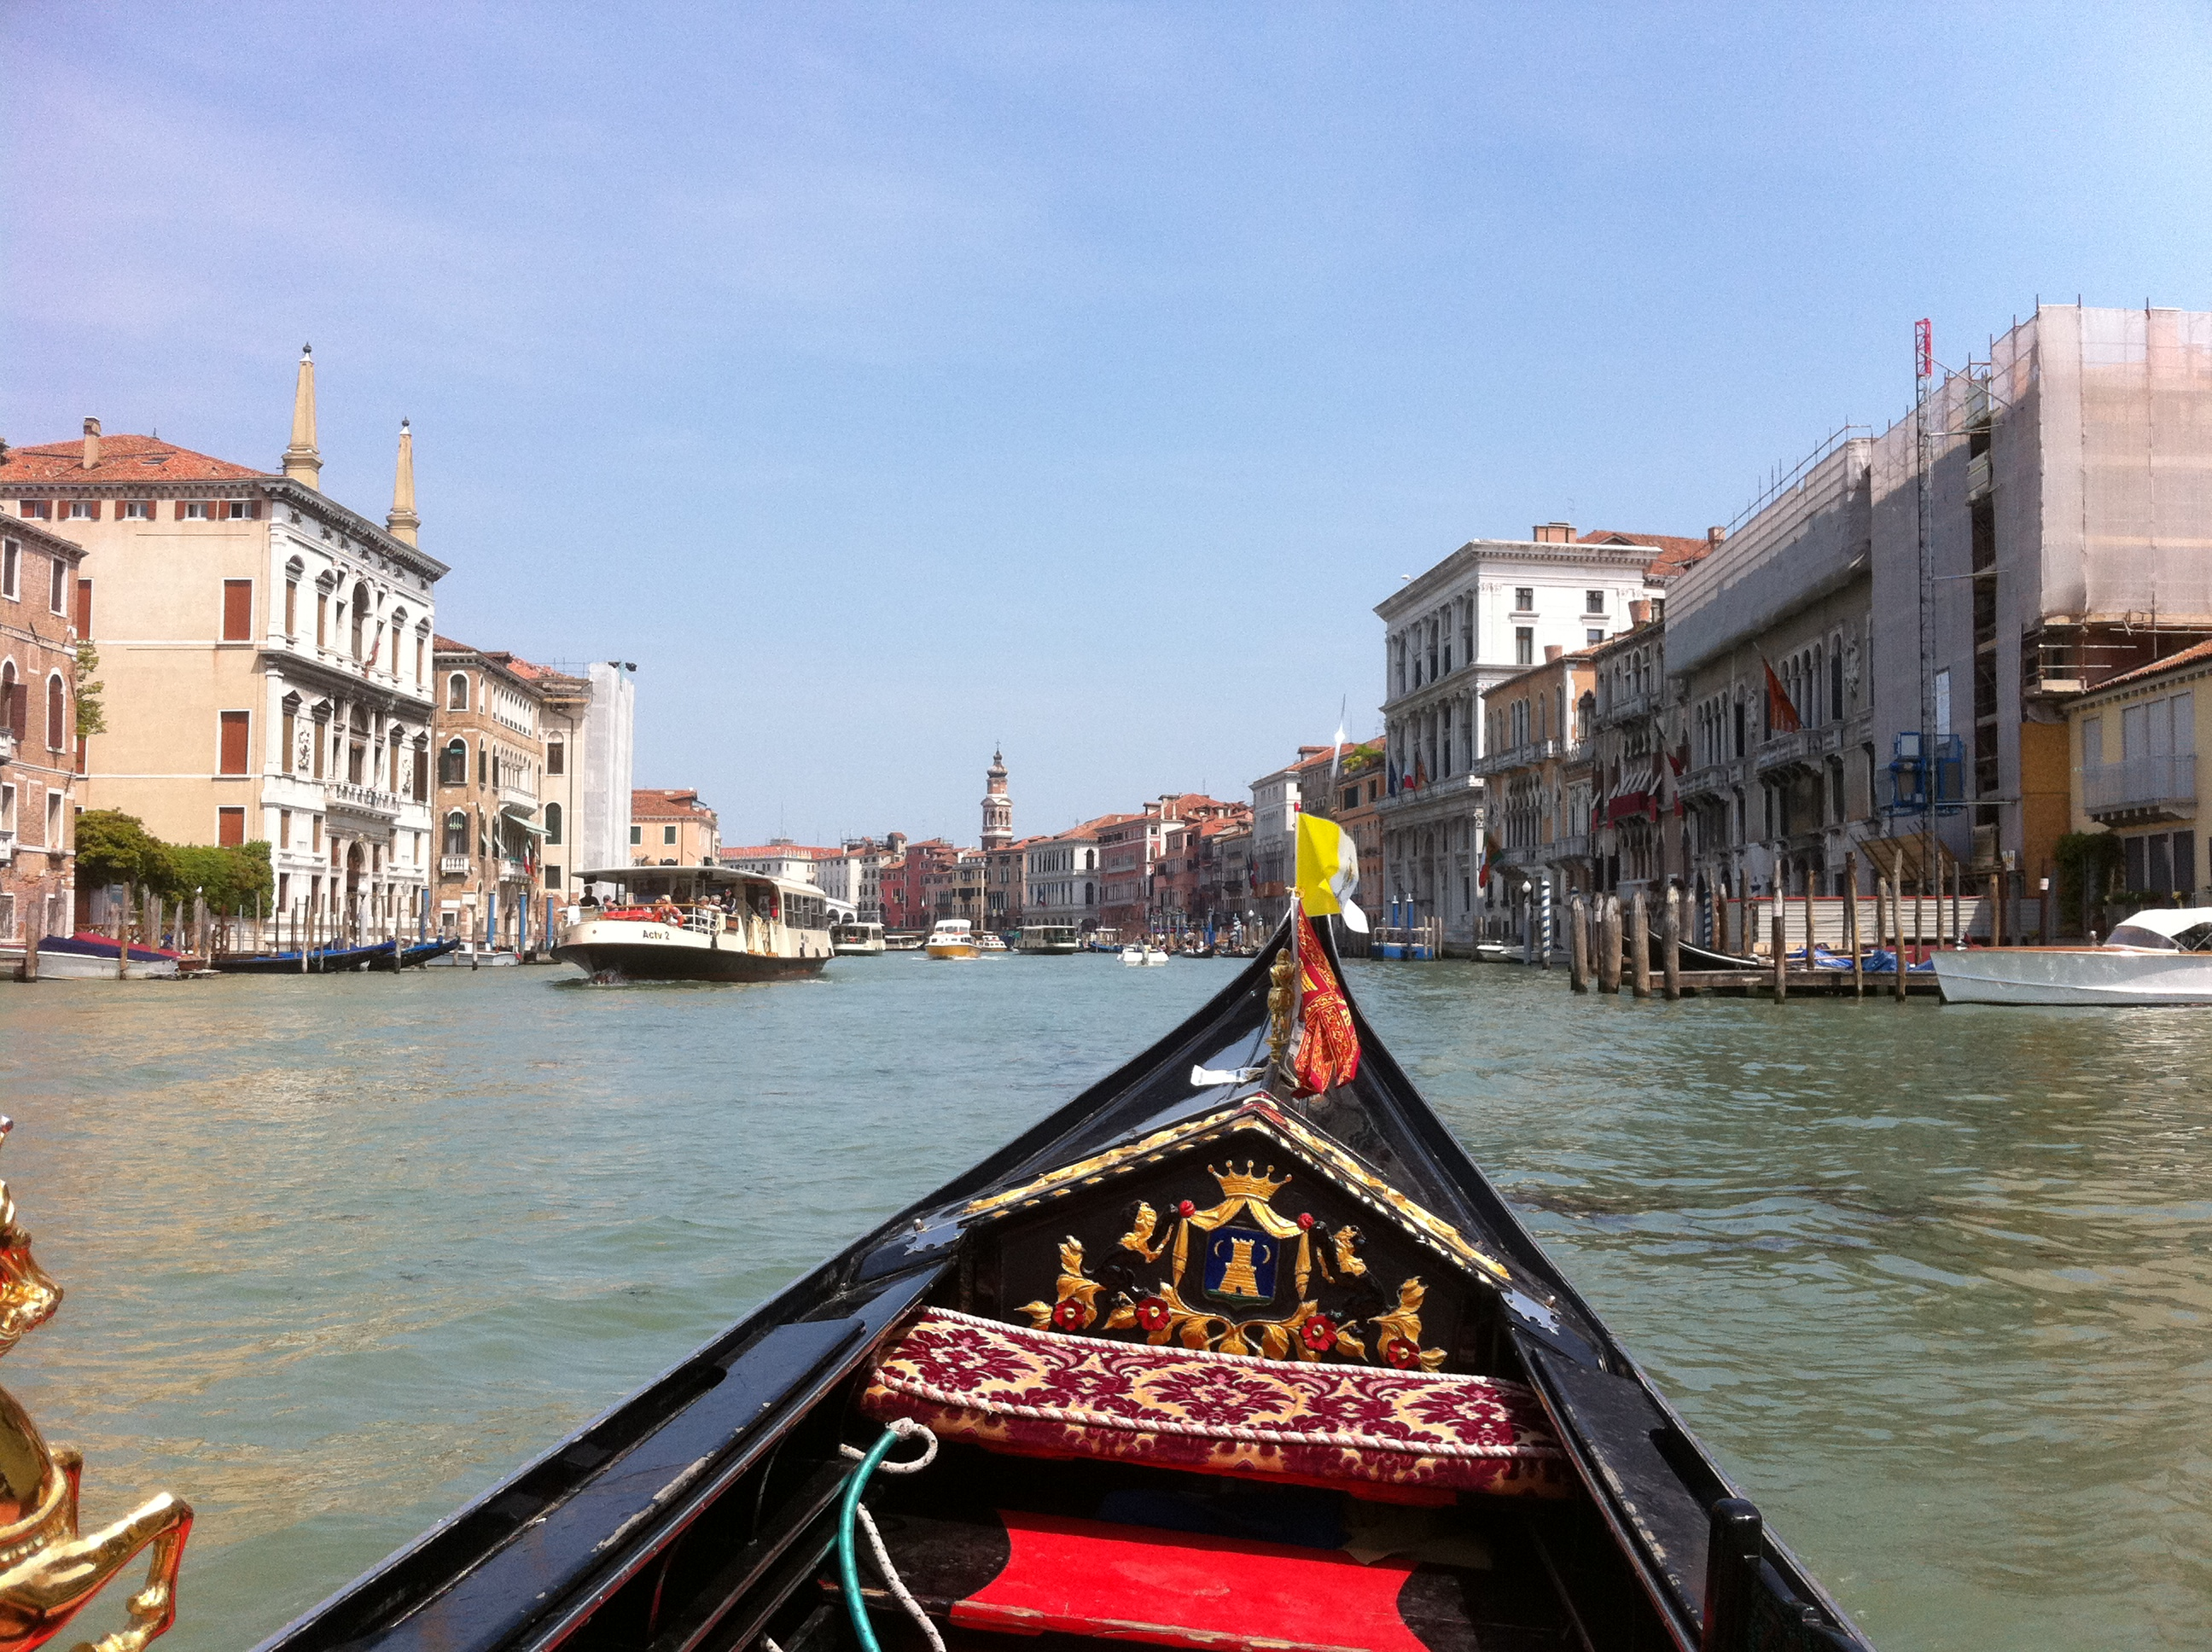 Grand Canal from a gondola, Venice